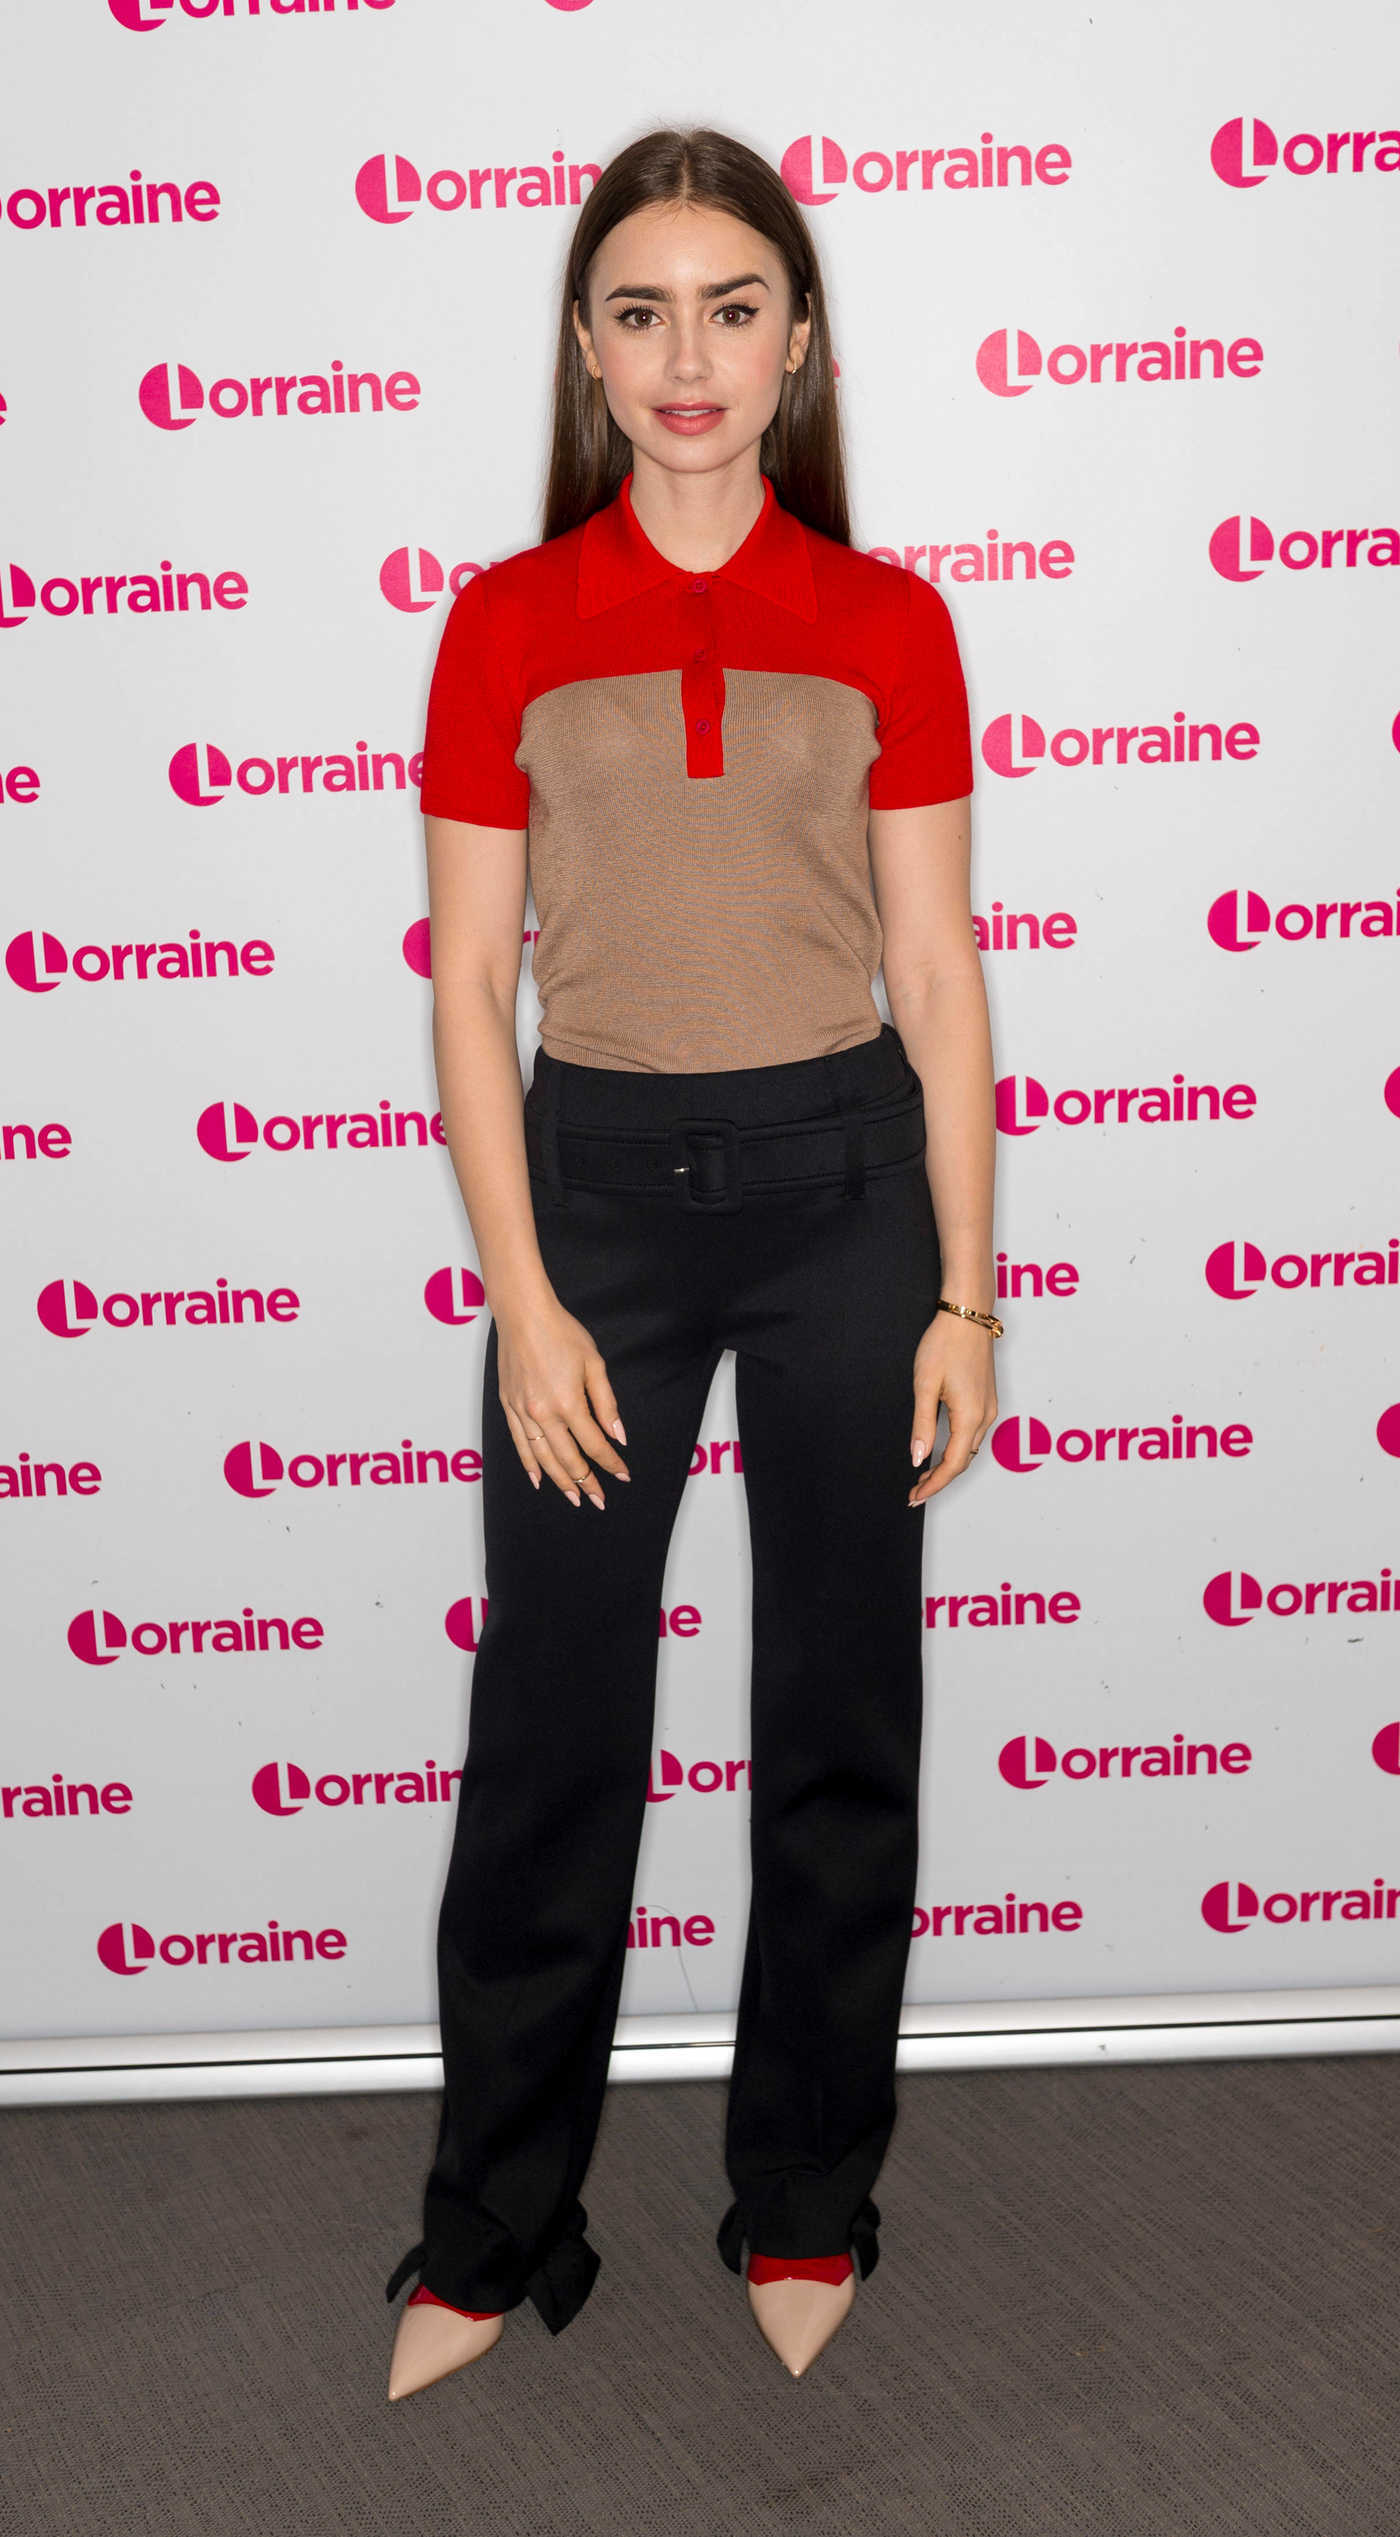 Lily Collins Attends Lorraine TV Show in London 12/20/2018